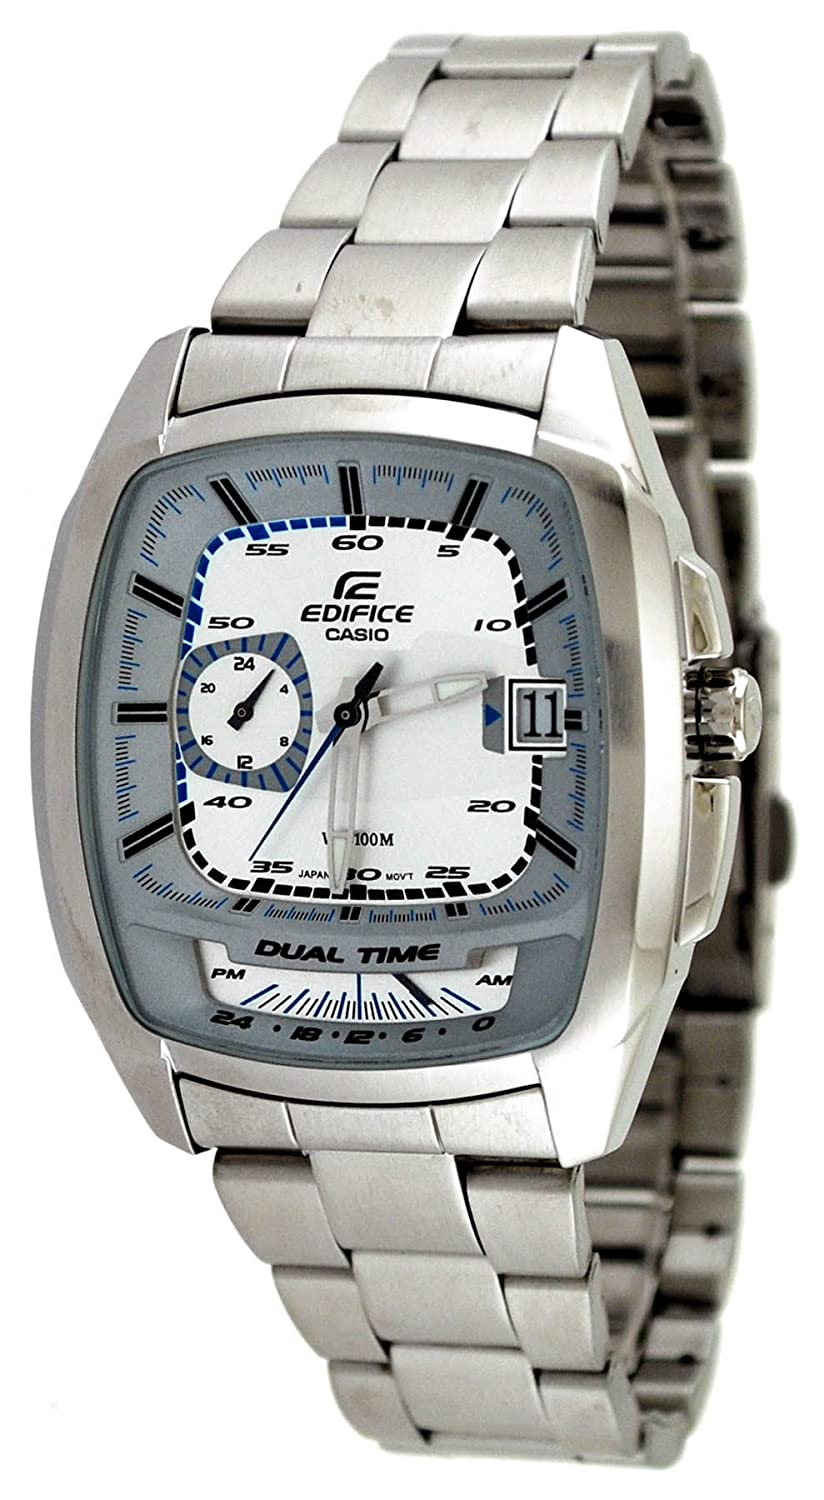 Amazon.com: Casio #EF321D-7AV Mens Edifice Stainless Steel Dual Time Zone Sports Watch: Watches